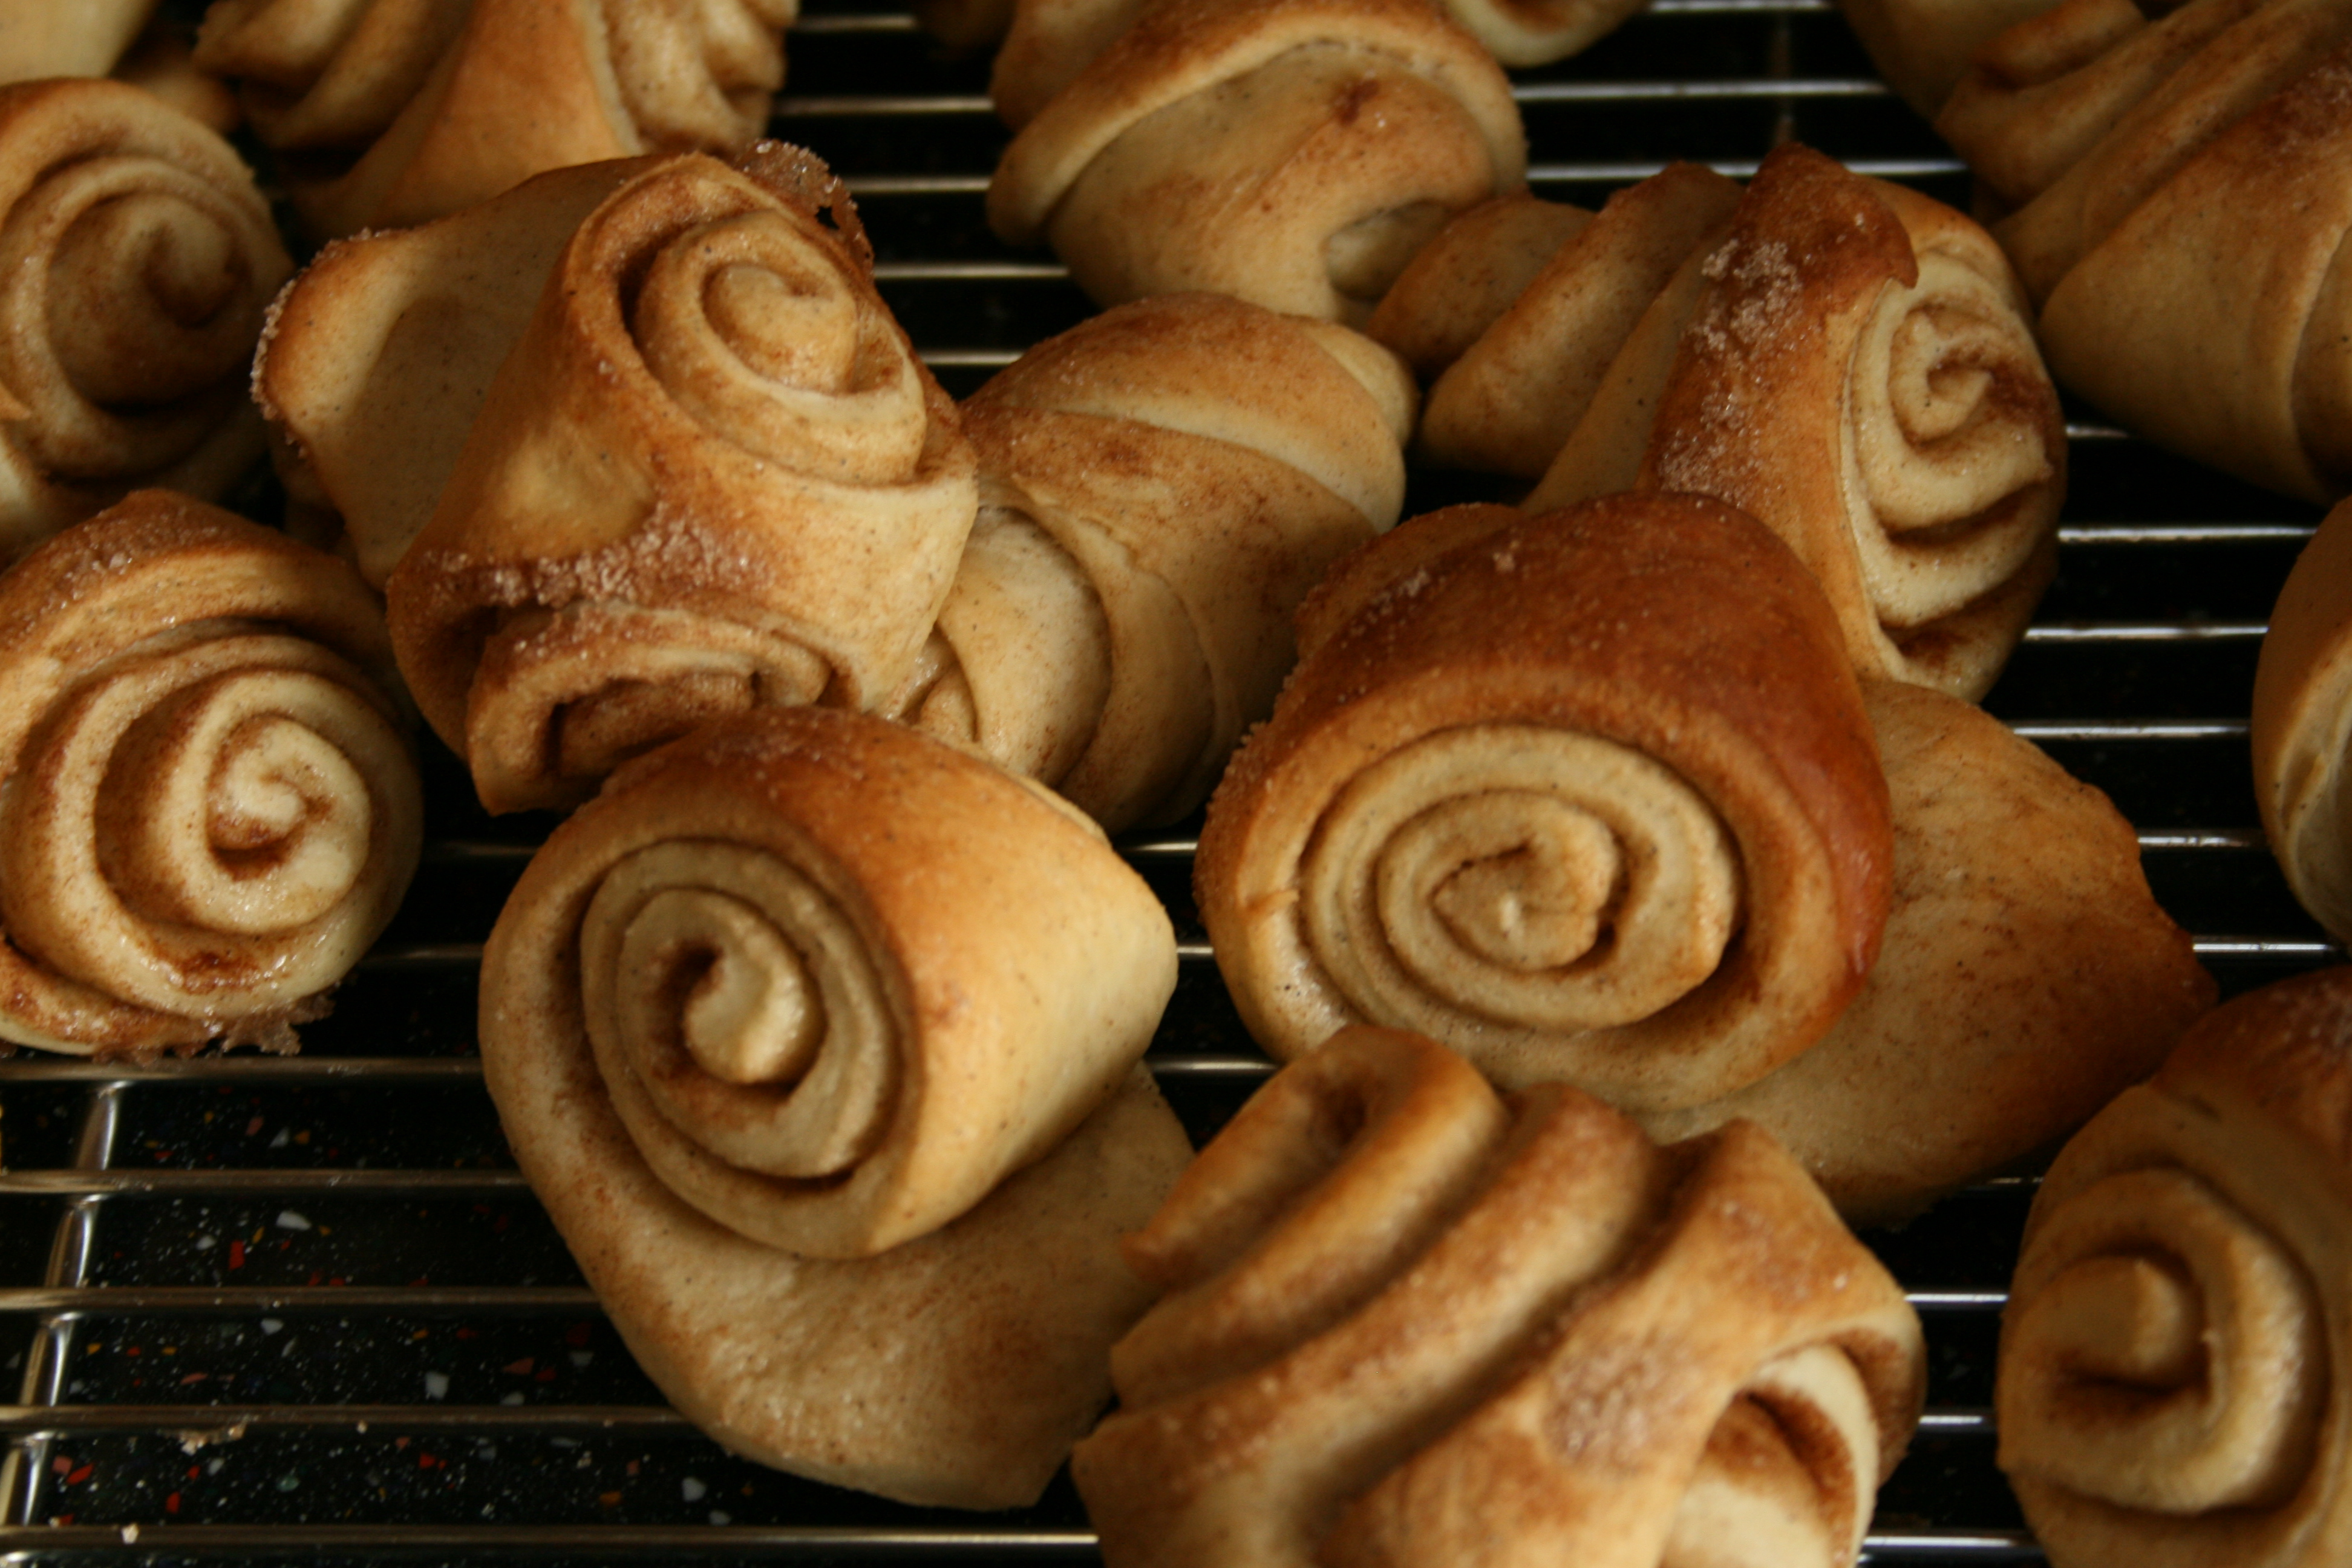 Finnish Cinnamon and Cardamom Buns | Three Clever Sisters